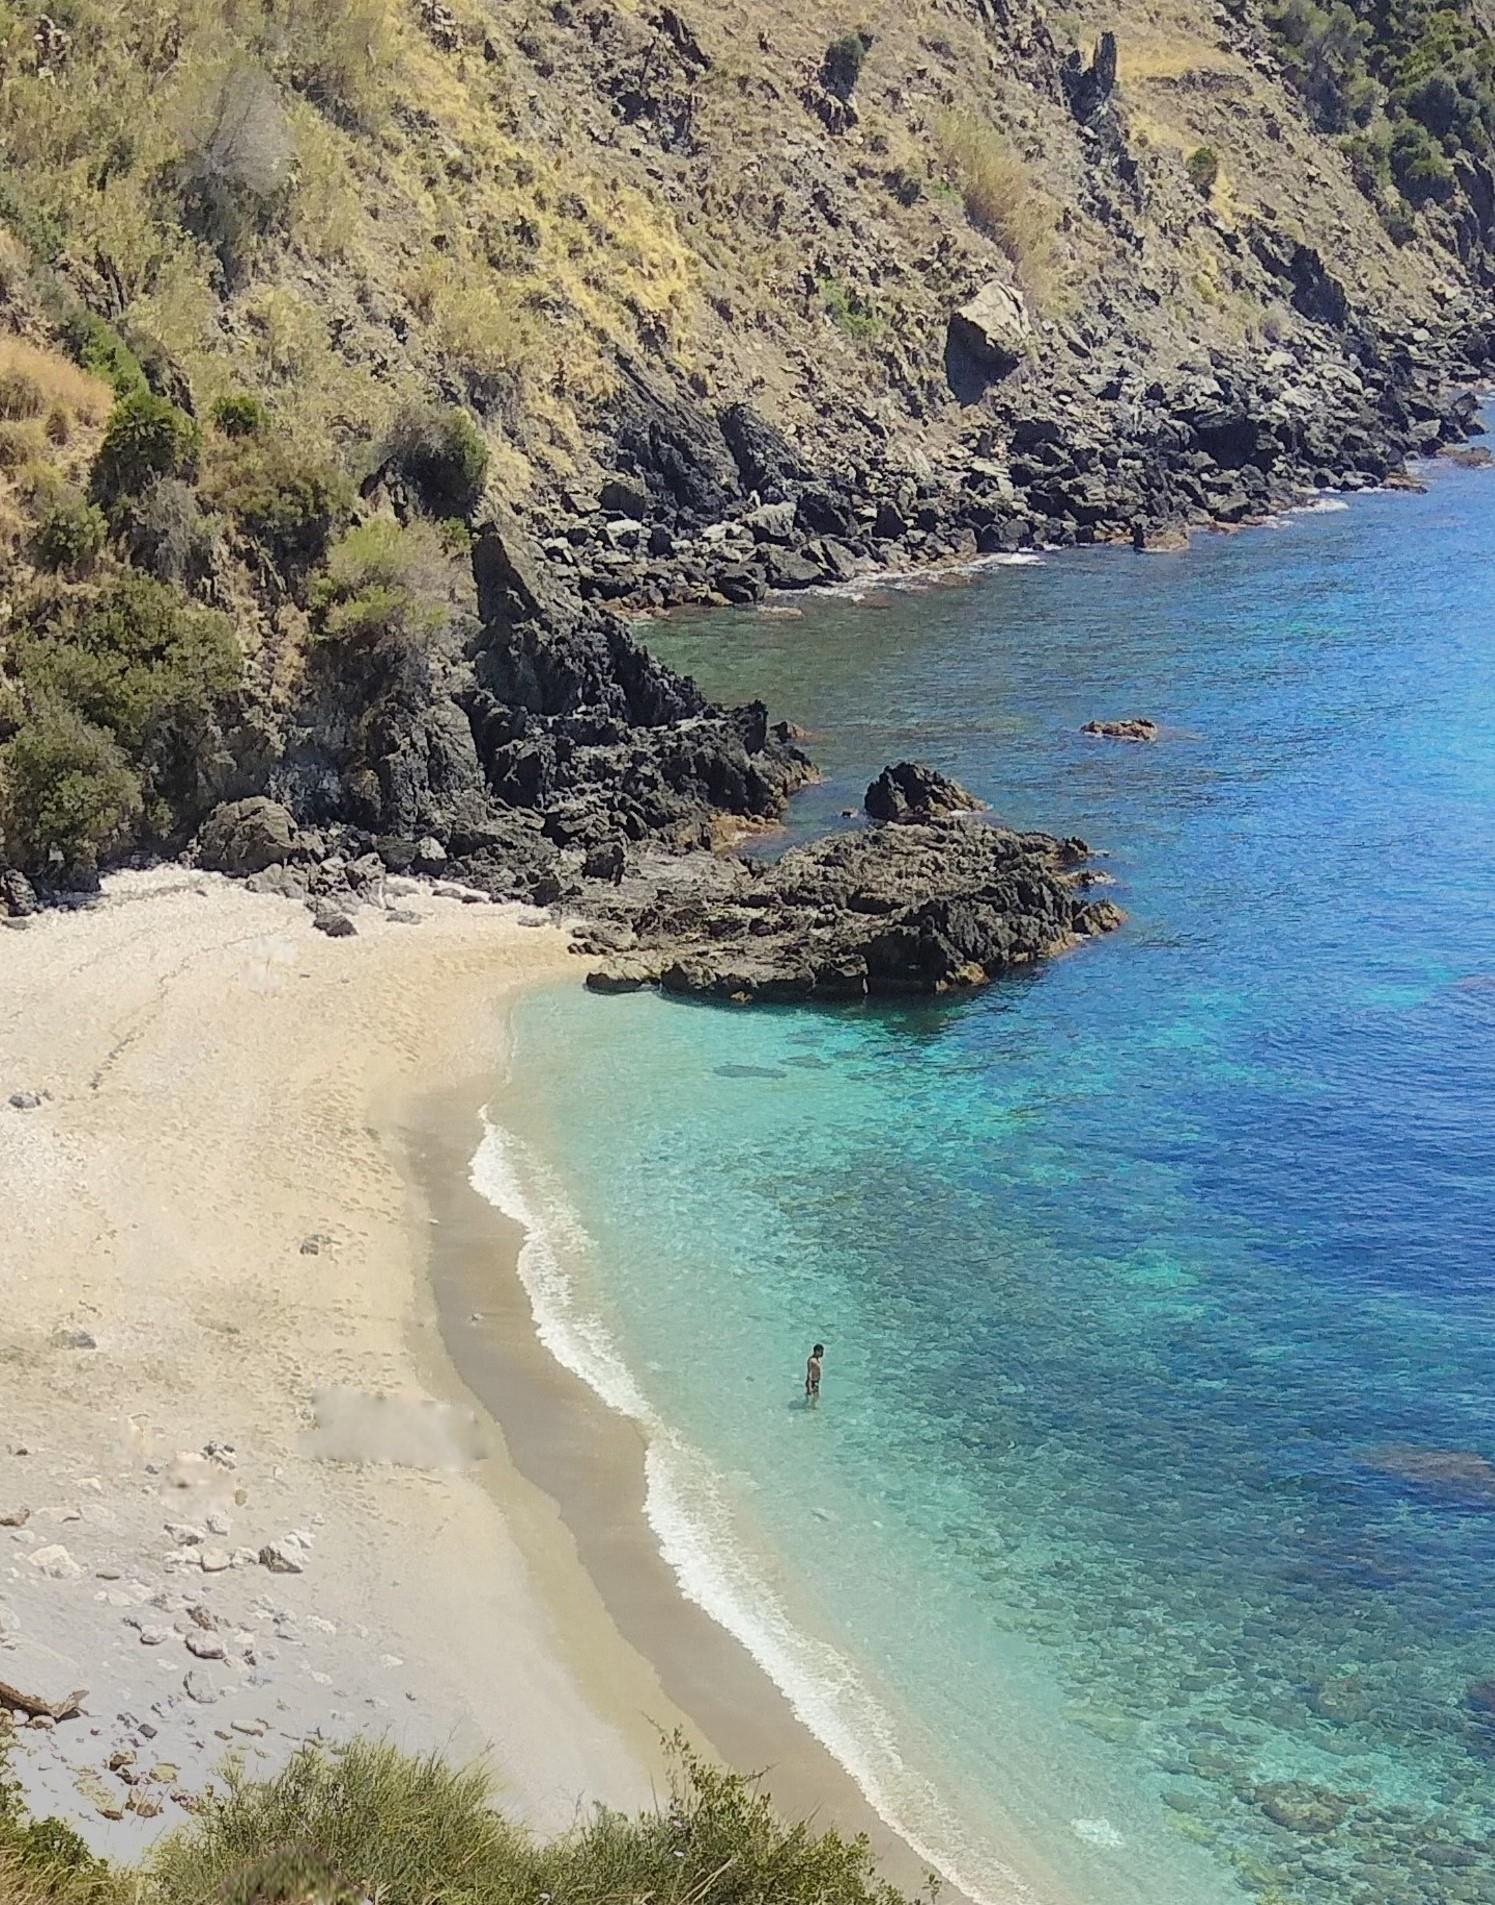 Tropical hike, paradisiacal beach and snorkeling